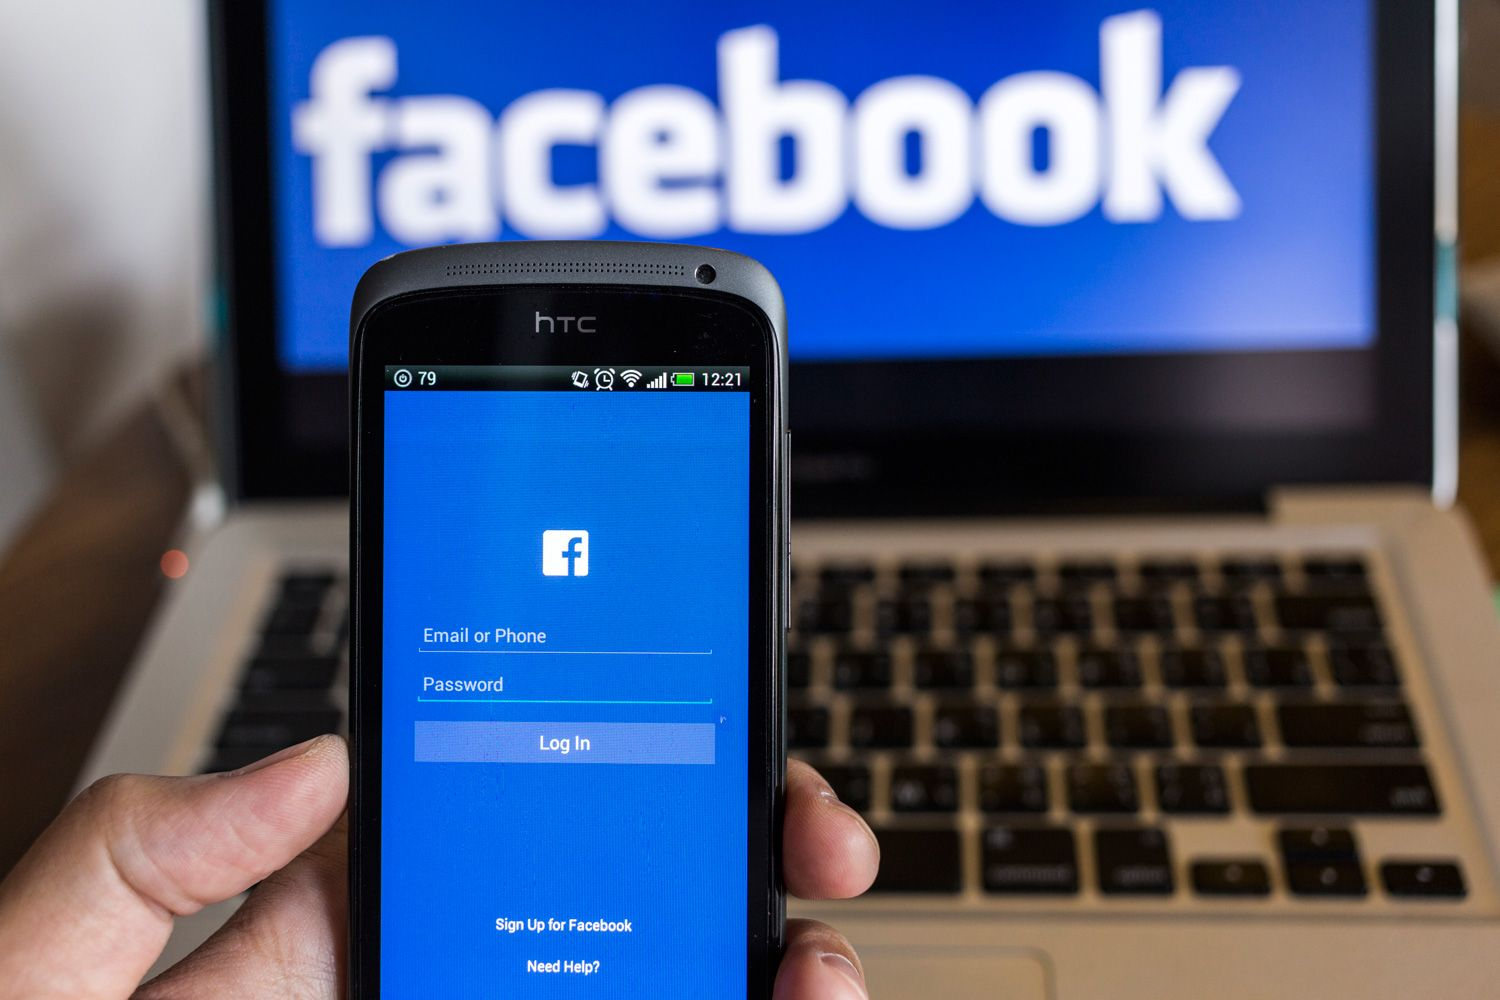 Facebook laptop login and Facebook messenger on phone